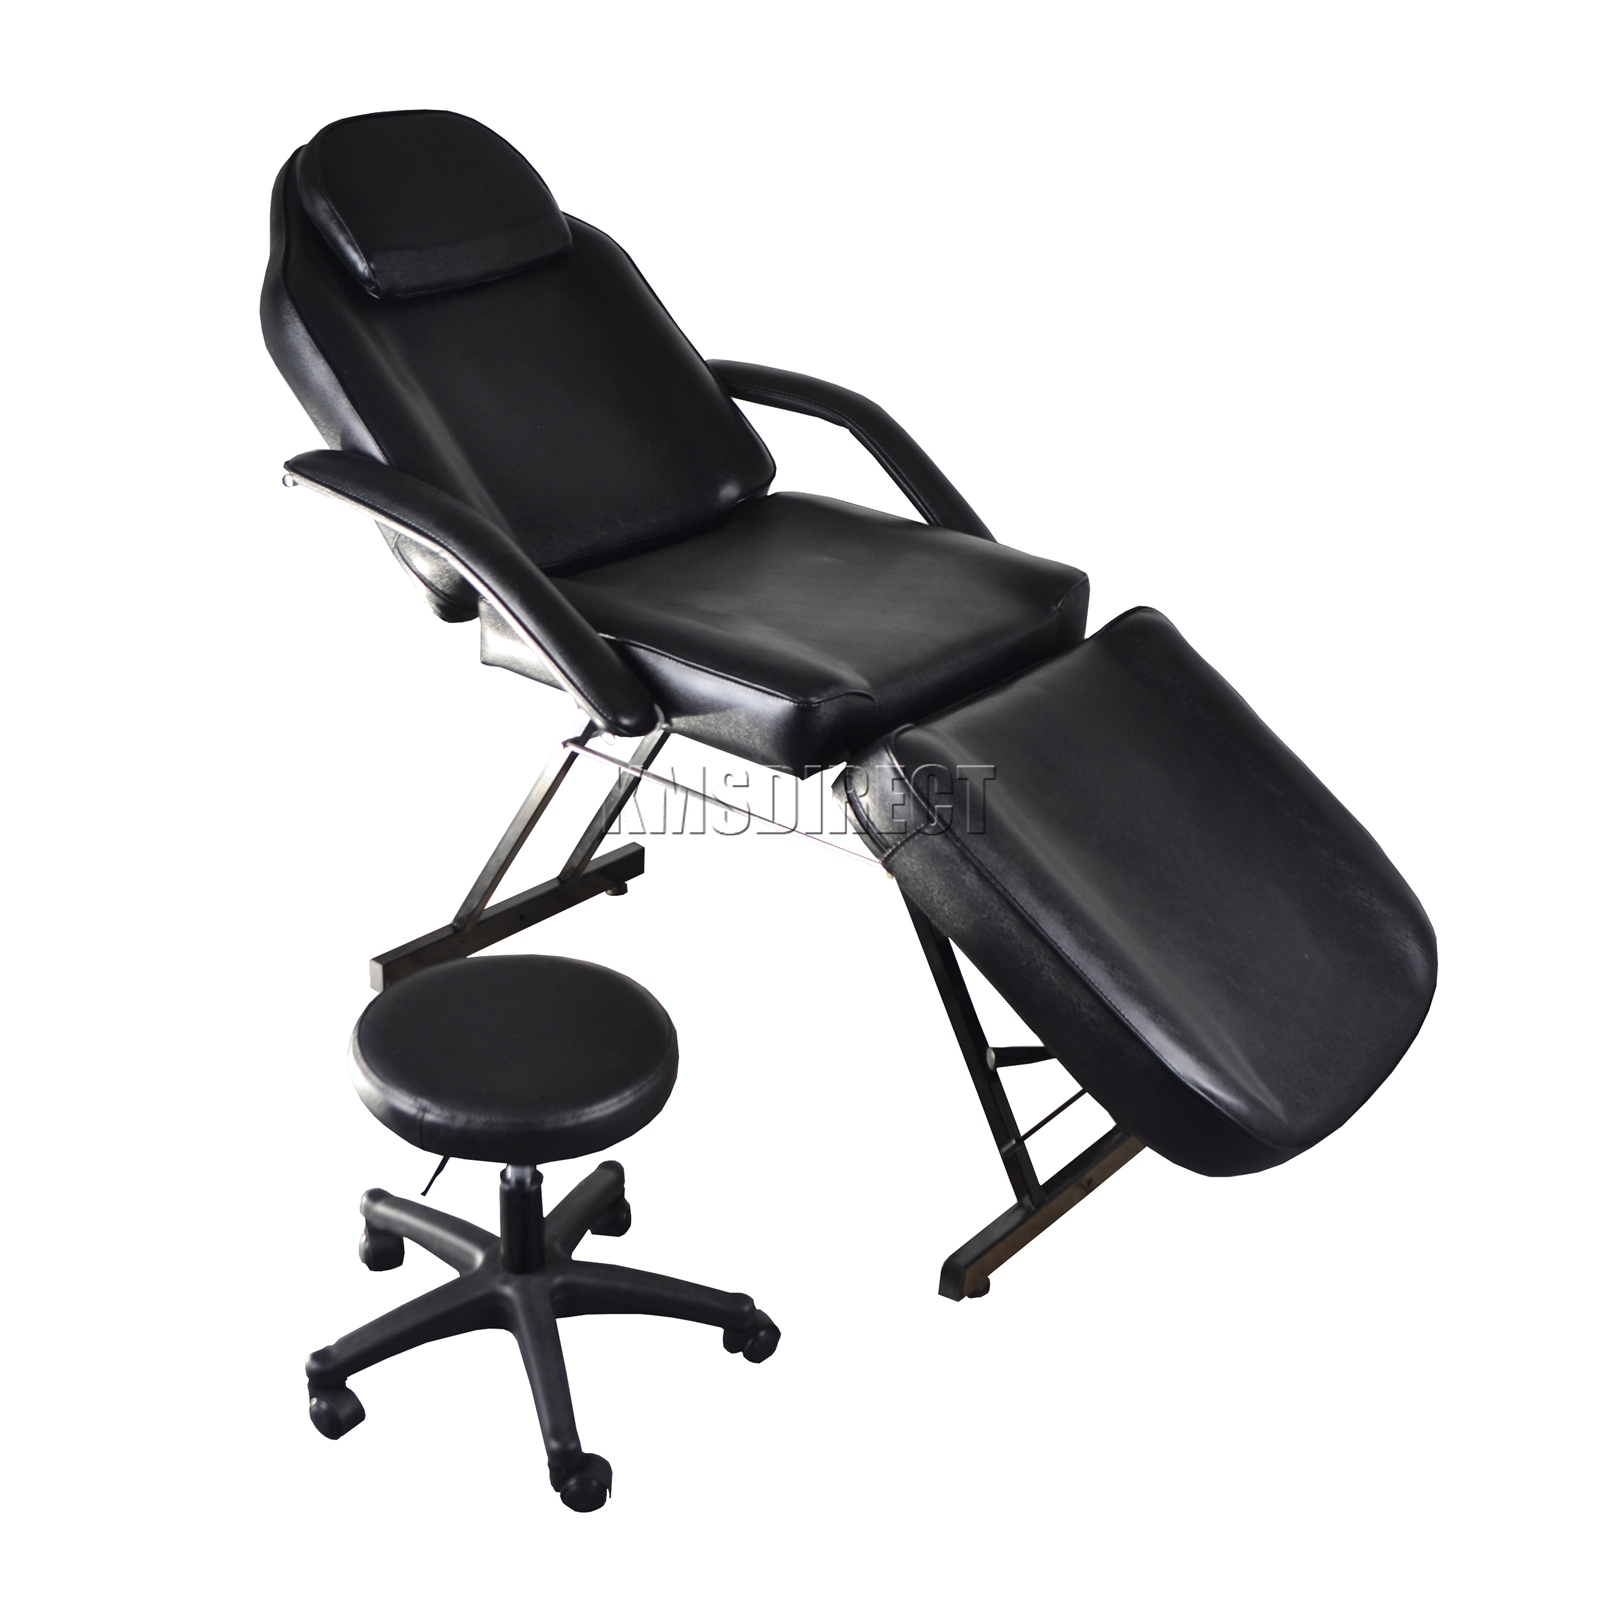 Salon De Massage 94 Westwood Beauty Salon Chair Massage Table Tattoo Facial